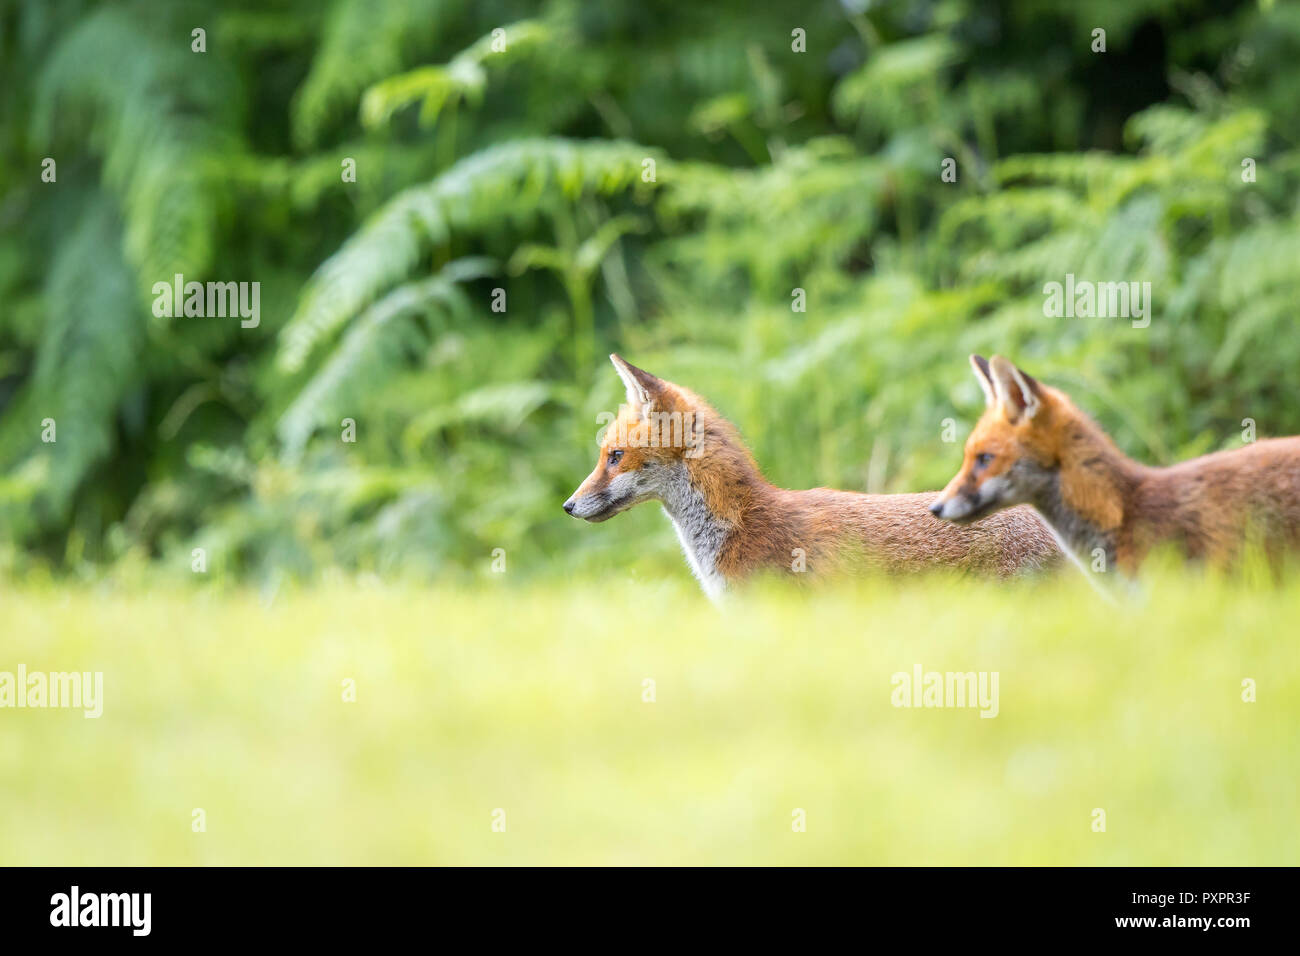 Low angle, landscape capture: pair of young, wild red foxes (Vulpes vulpes) stood still & alert in grass, side-on, against natural woodland background. - Stock Image